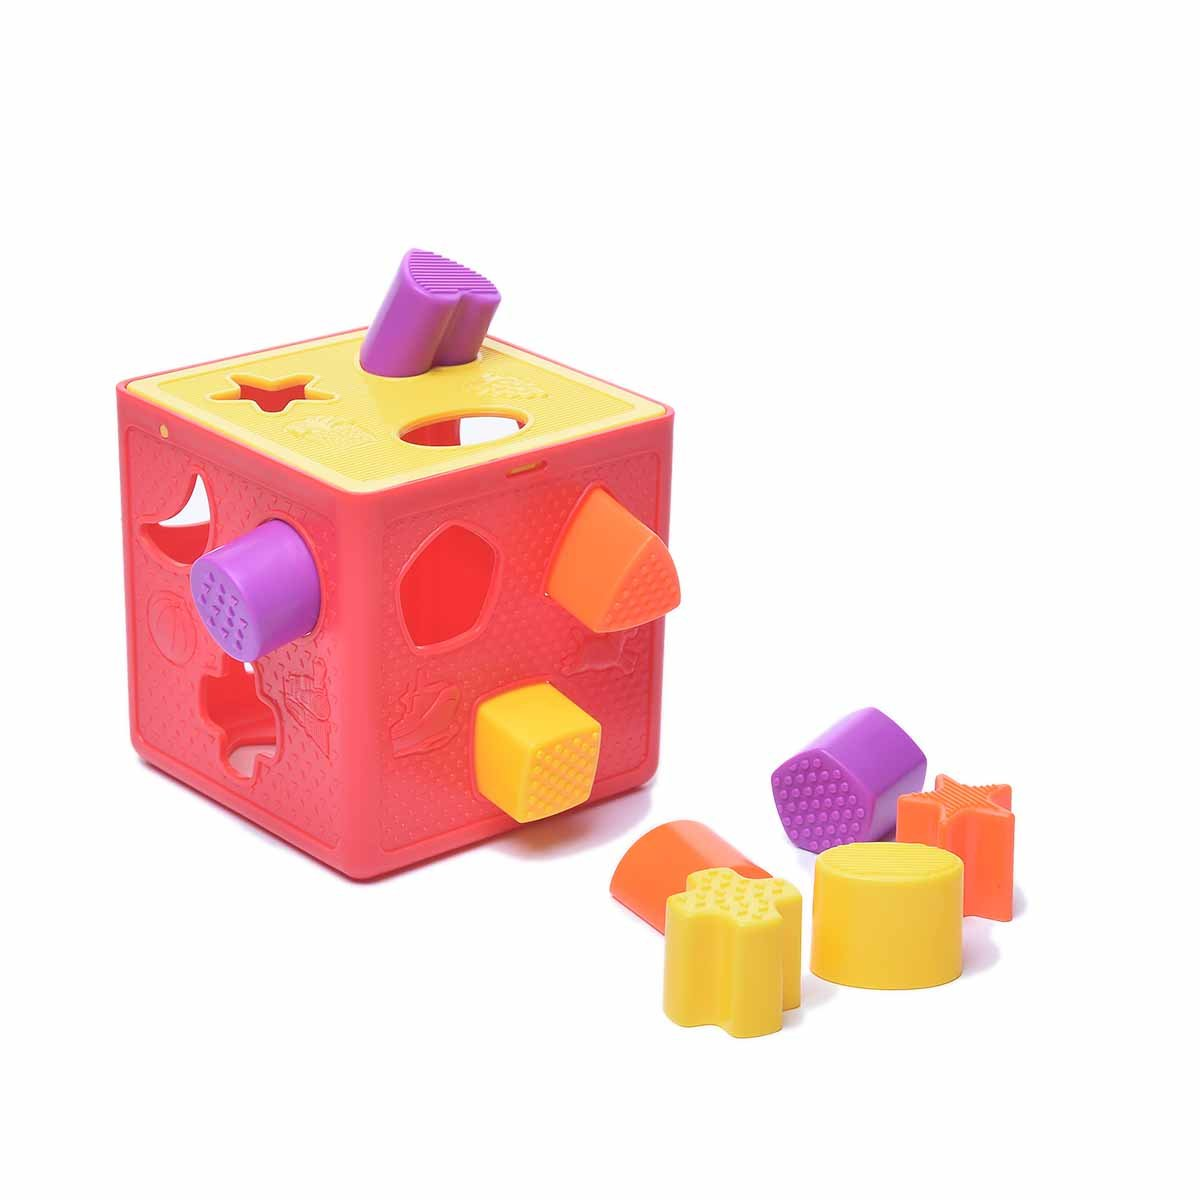 Baby Learning Cognitive Building Blocks Toys - Form Fitter, Shape Sorter Childrens Blocks - Color Recognition Shape Toys Colorful Sorter Cube Box - Toys Gift Boys & Girls